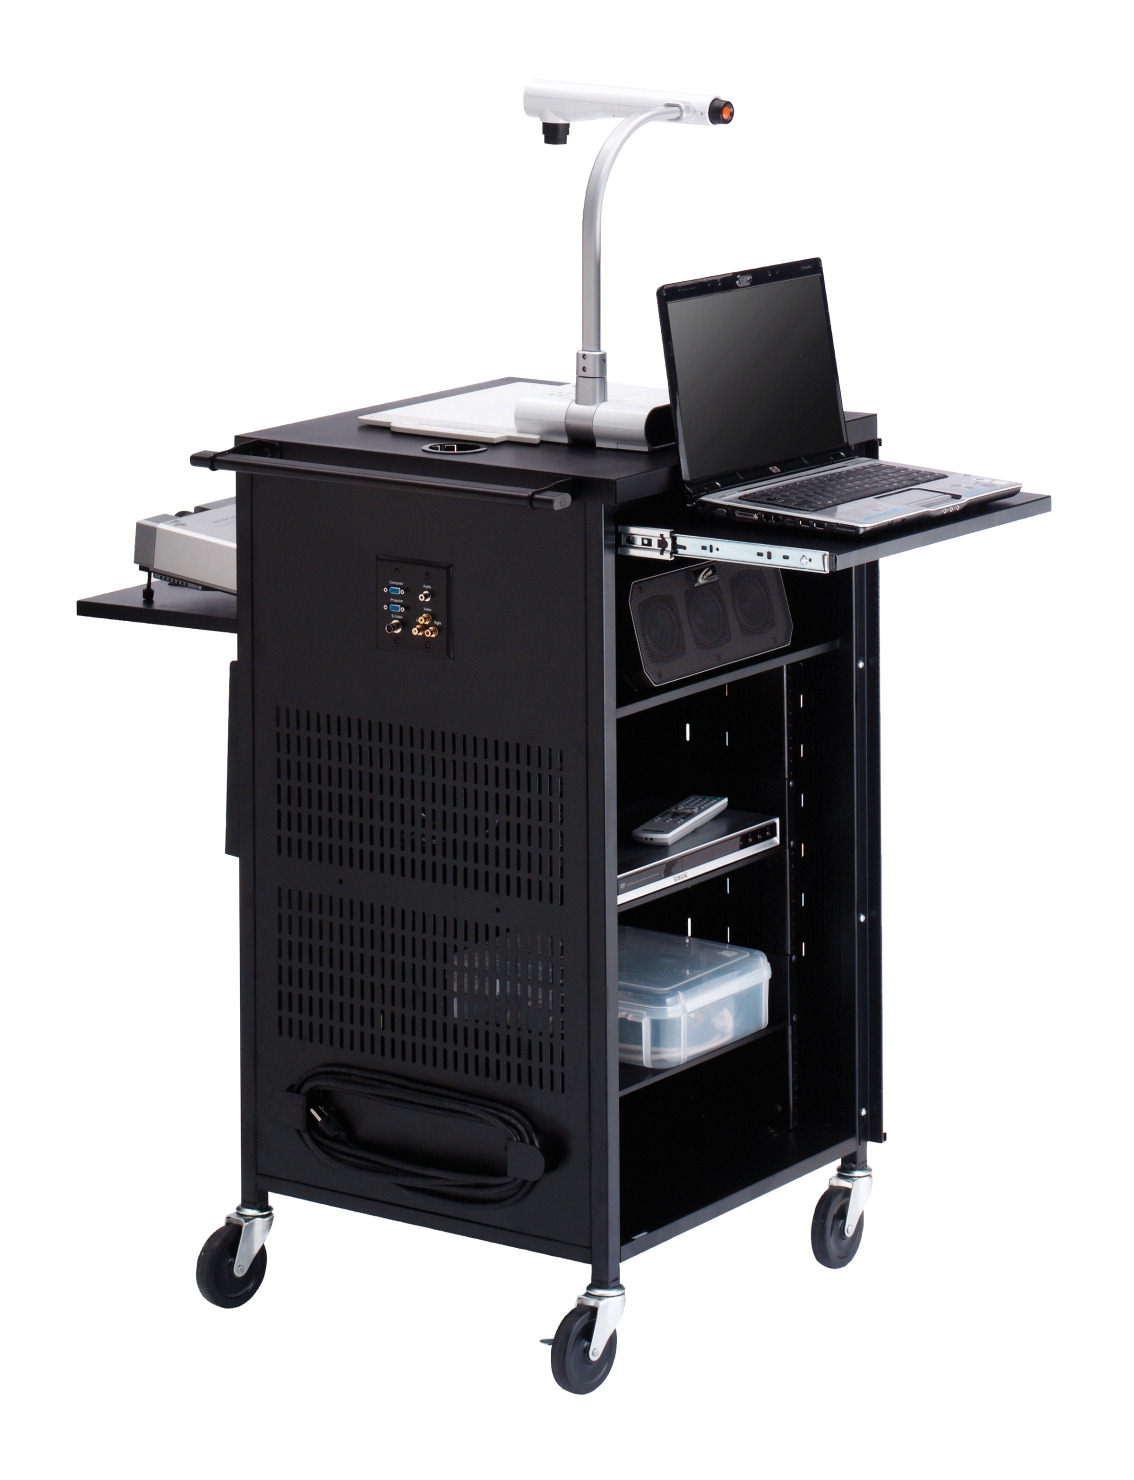 Bretford PAL Multi-Media Presentation Cart Stand, 23 x 23 x 41 Inches, Various Colors